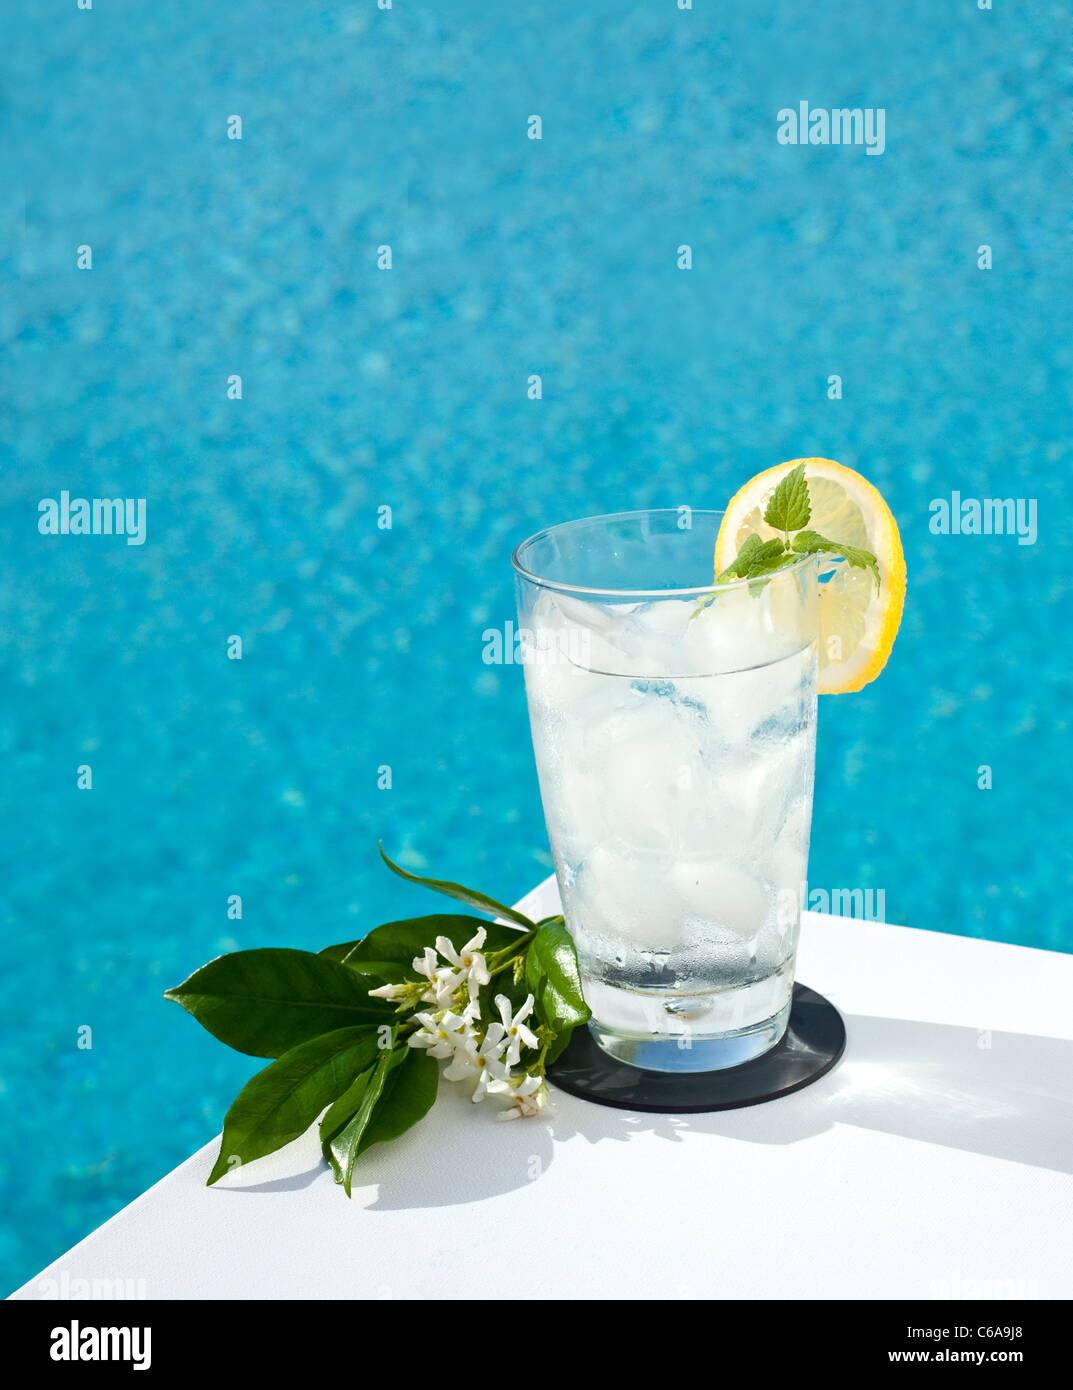 Swimming pool water drink stock photos swimming pool water drink stock images alamy How to make swimming pool water drinkable